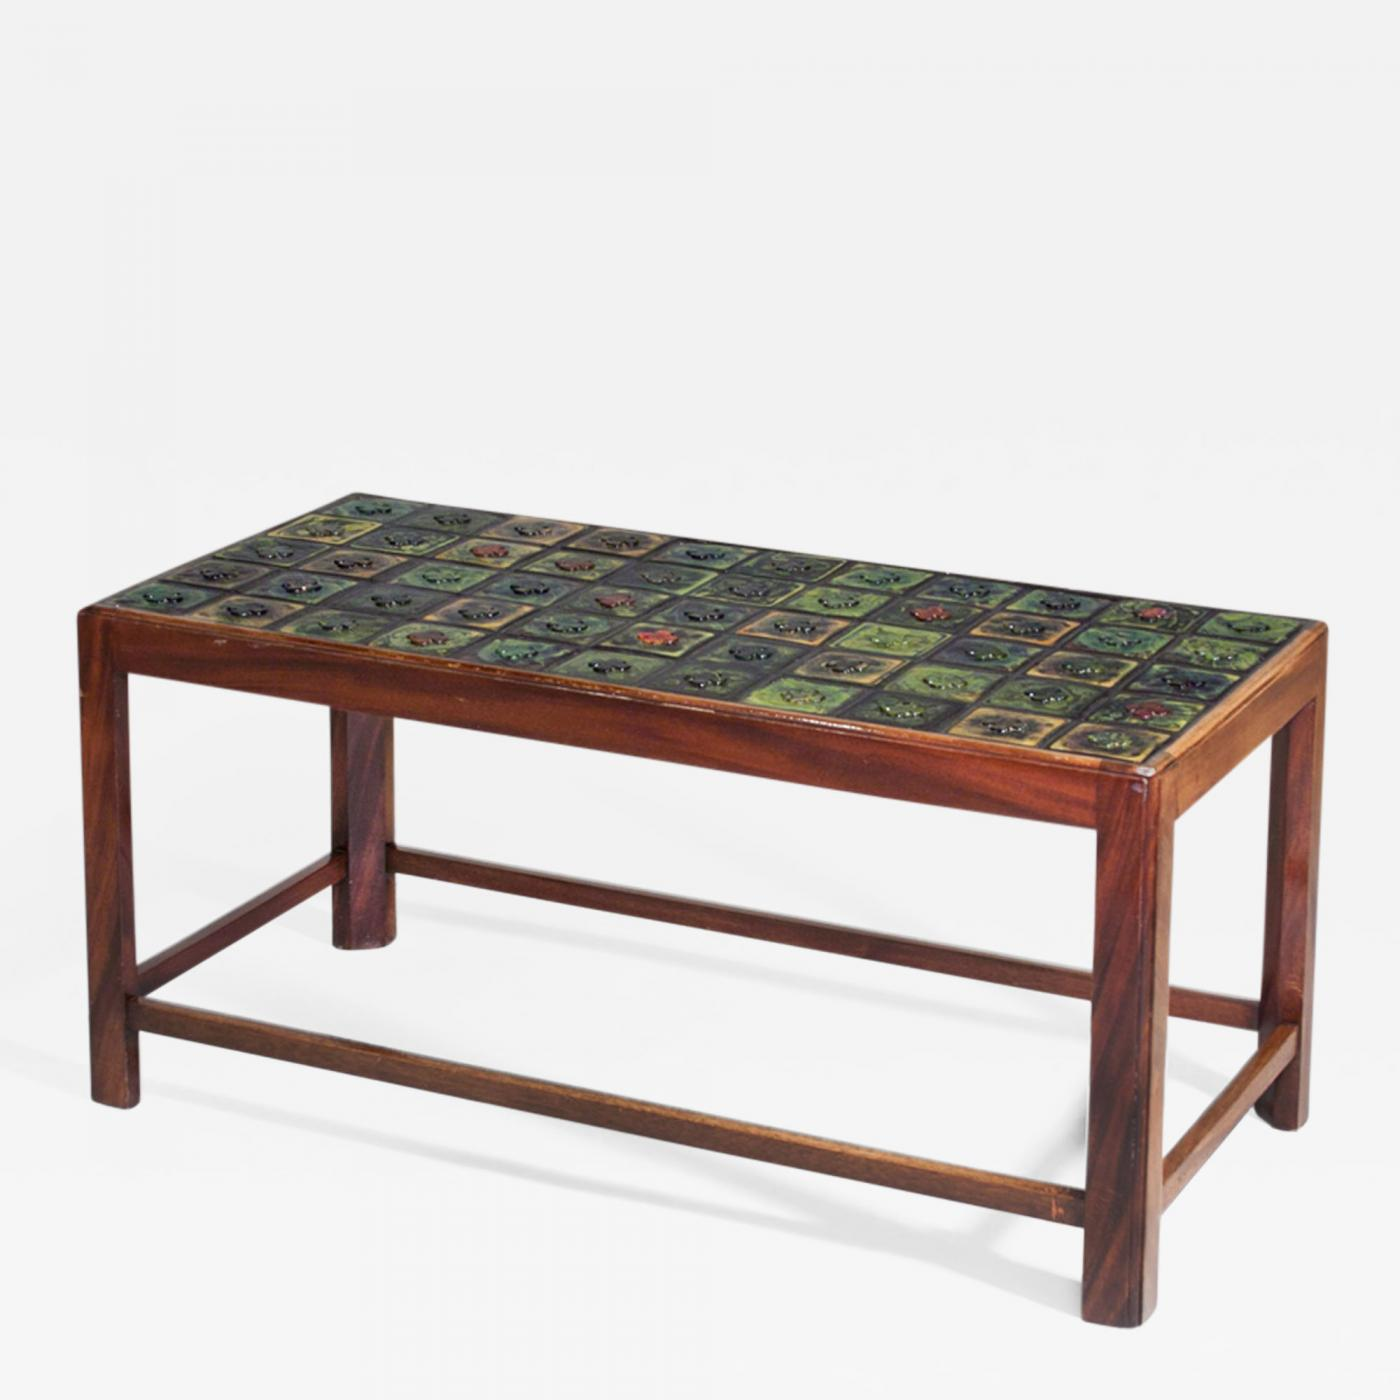 Tiffany Studios Coffee Table With Tiffany Glass Tile Inlay - Coffee table with tile inlay